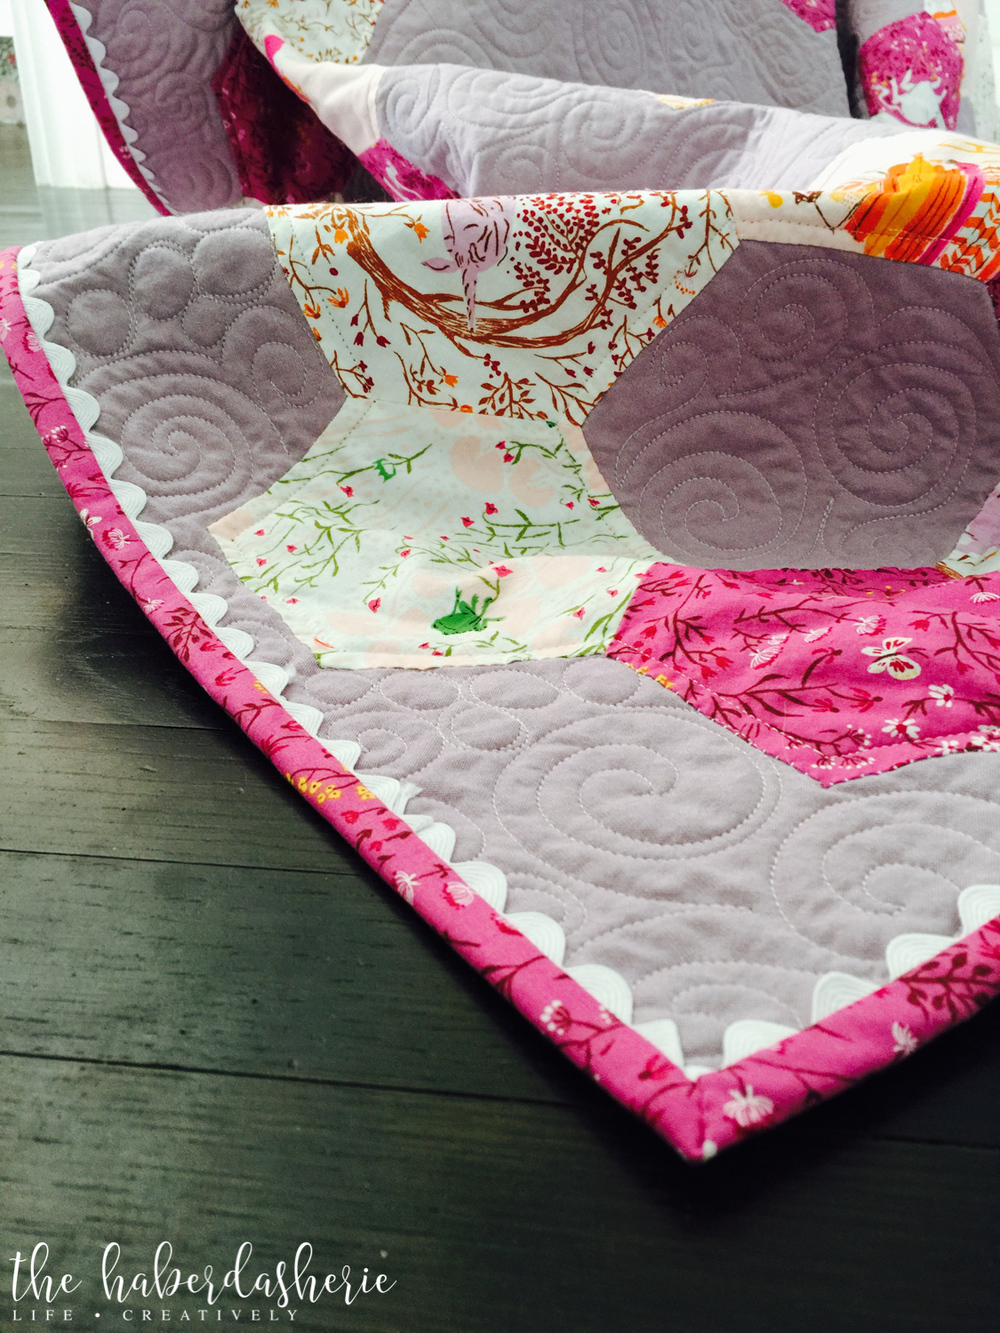 adding whimsy to your quilt • rick rack binding tutorial — the ... : adding binding to quilt - Adamdwight.com